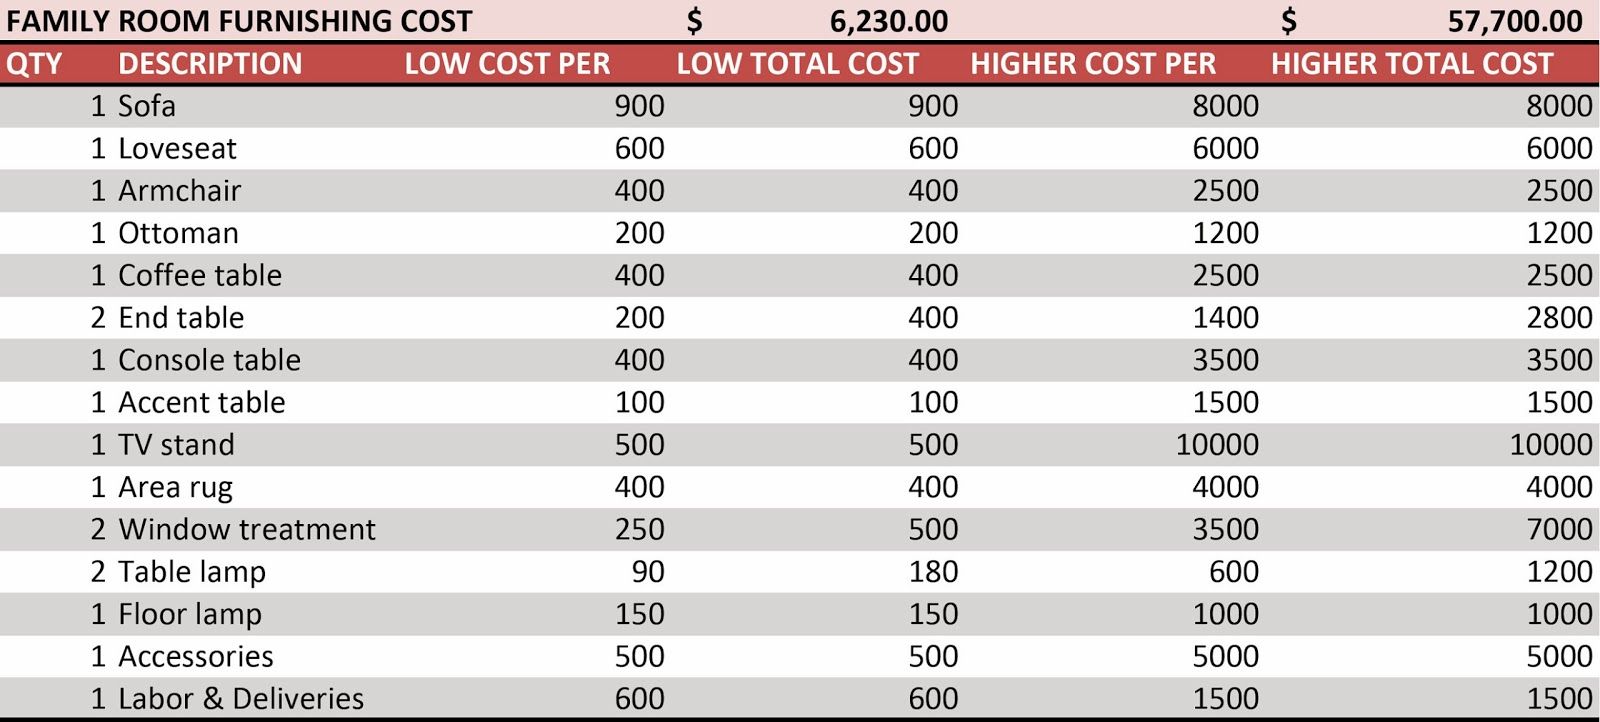 Now That We Ve Had A Reality Check Let S Talk About What Low Cost Means Based On The Above Numbers Items Are In Reference To